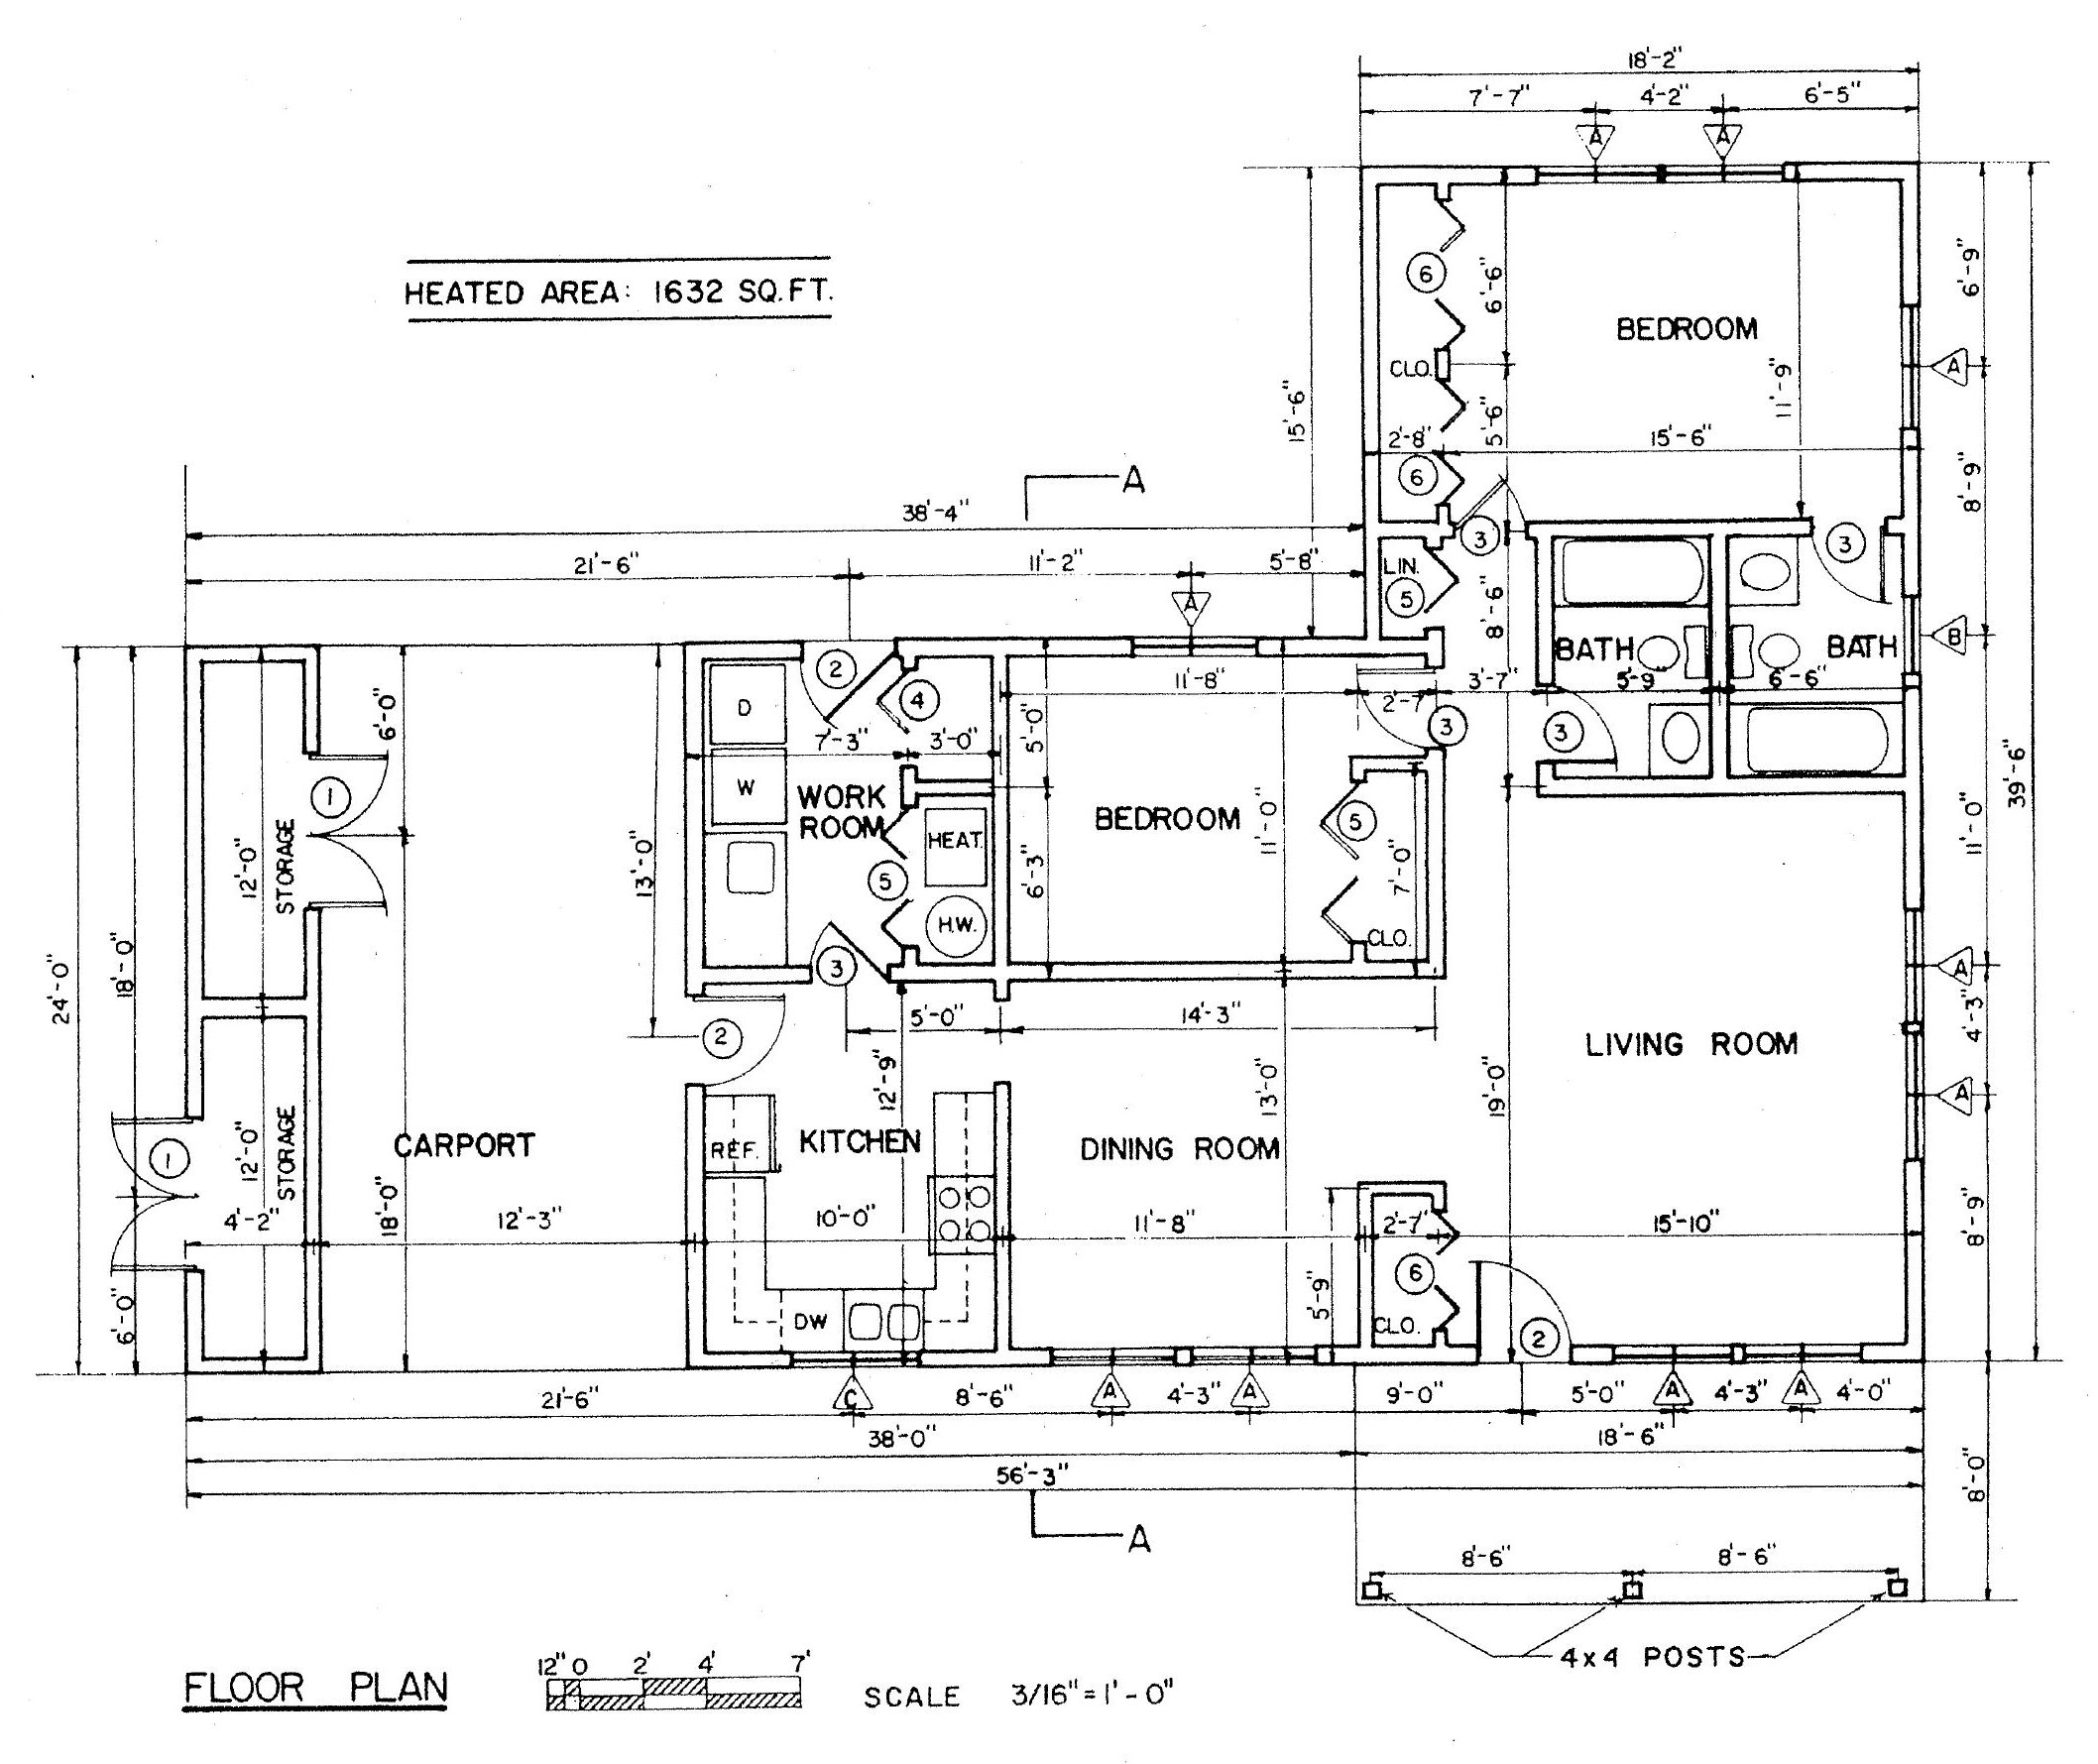 House Plans Ranch   Home Design ranch style house floor plan ranch style house foundation plan